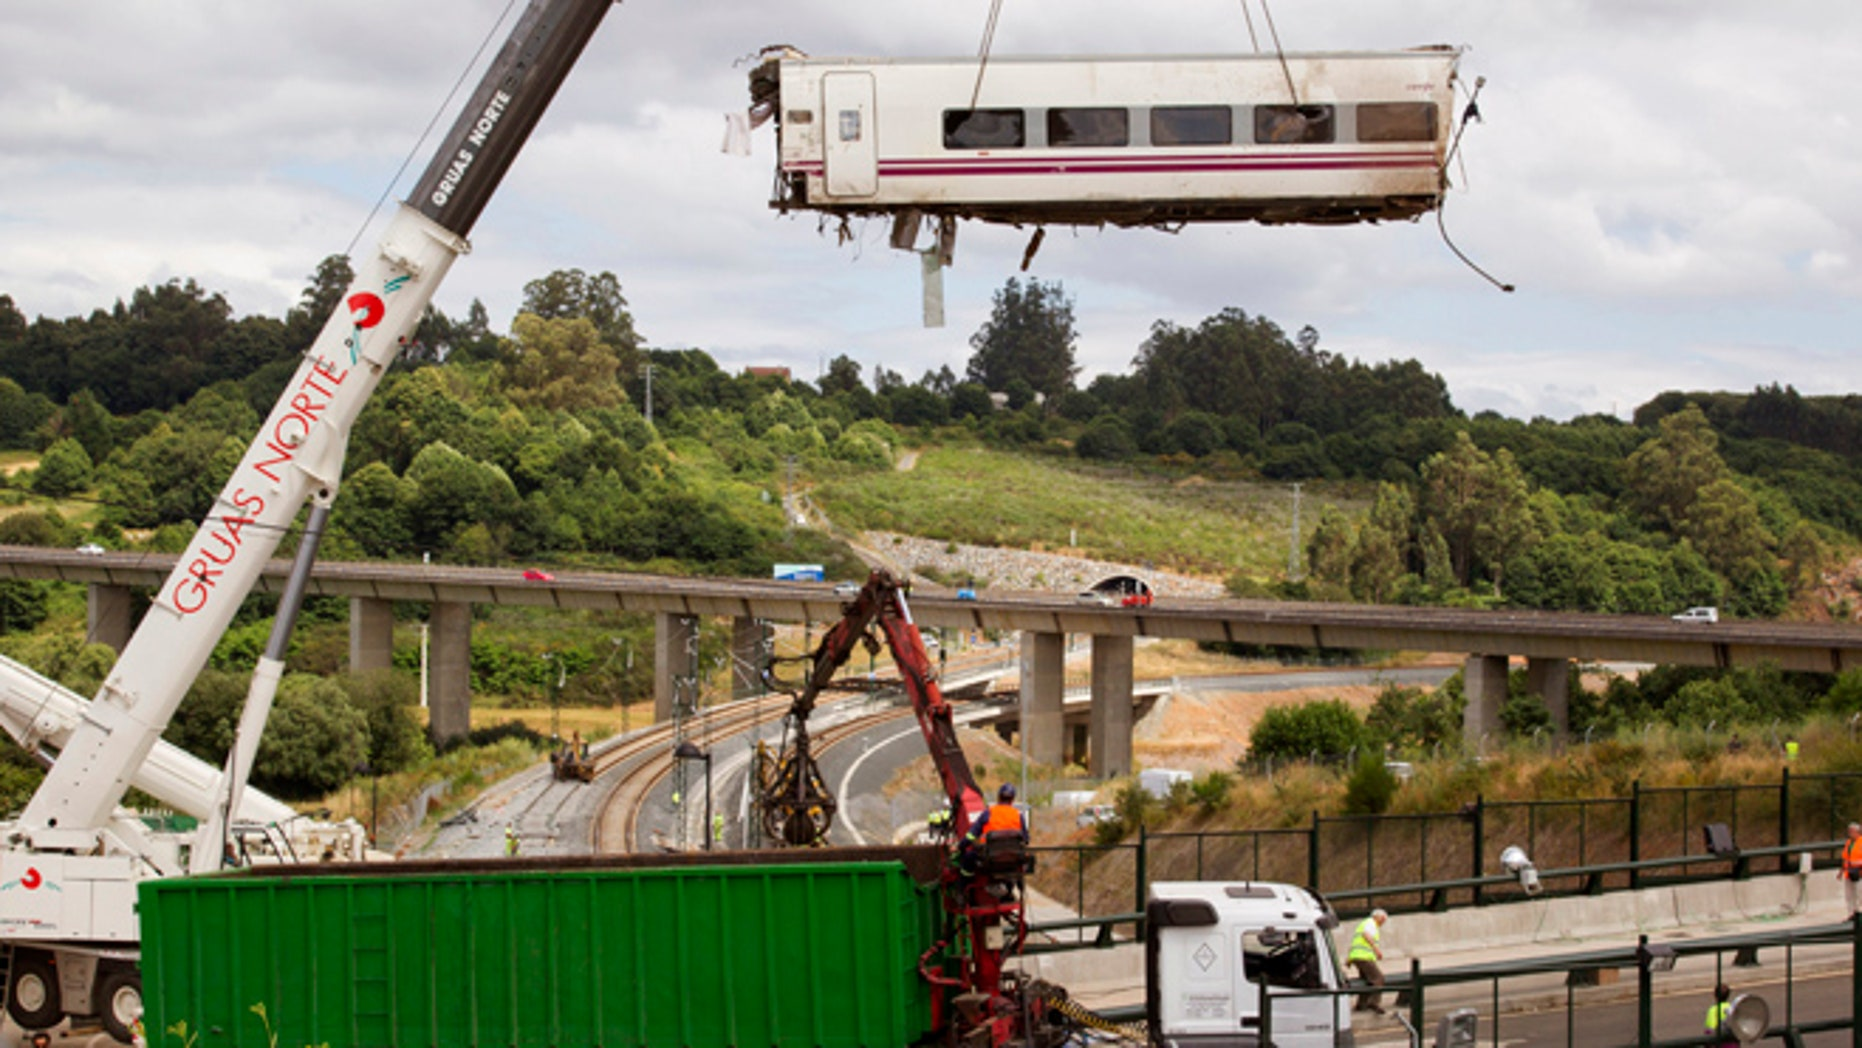 July 25, 2013: In this file photo, a derailed train car is lifted by a crane at the site of a train accident in Santiago de Compostela, Spain.